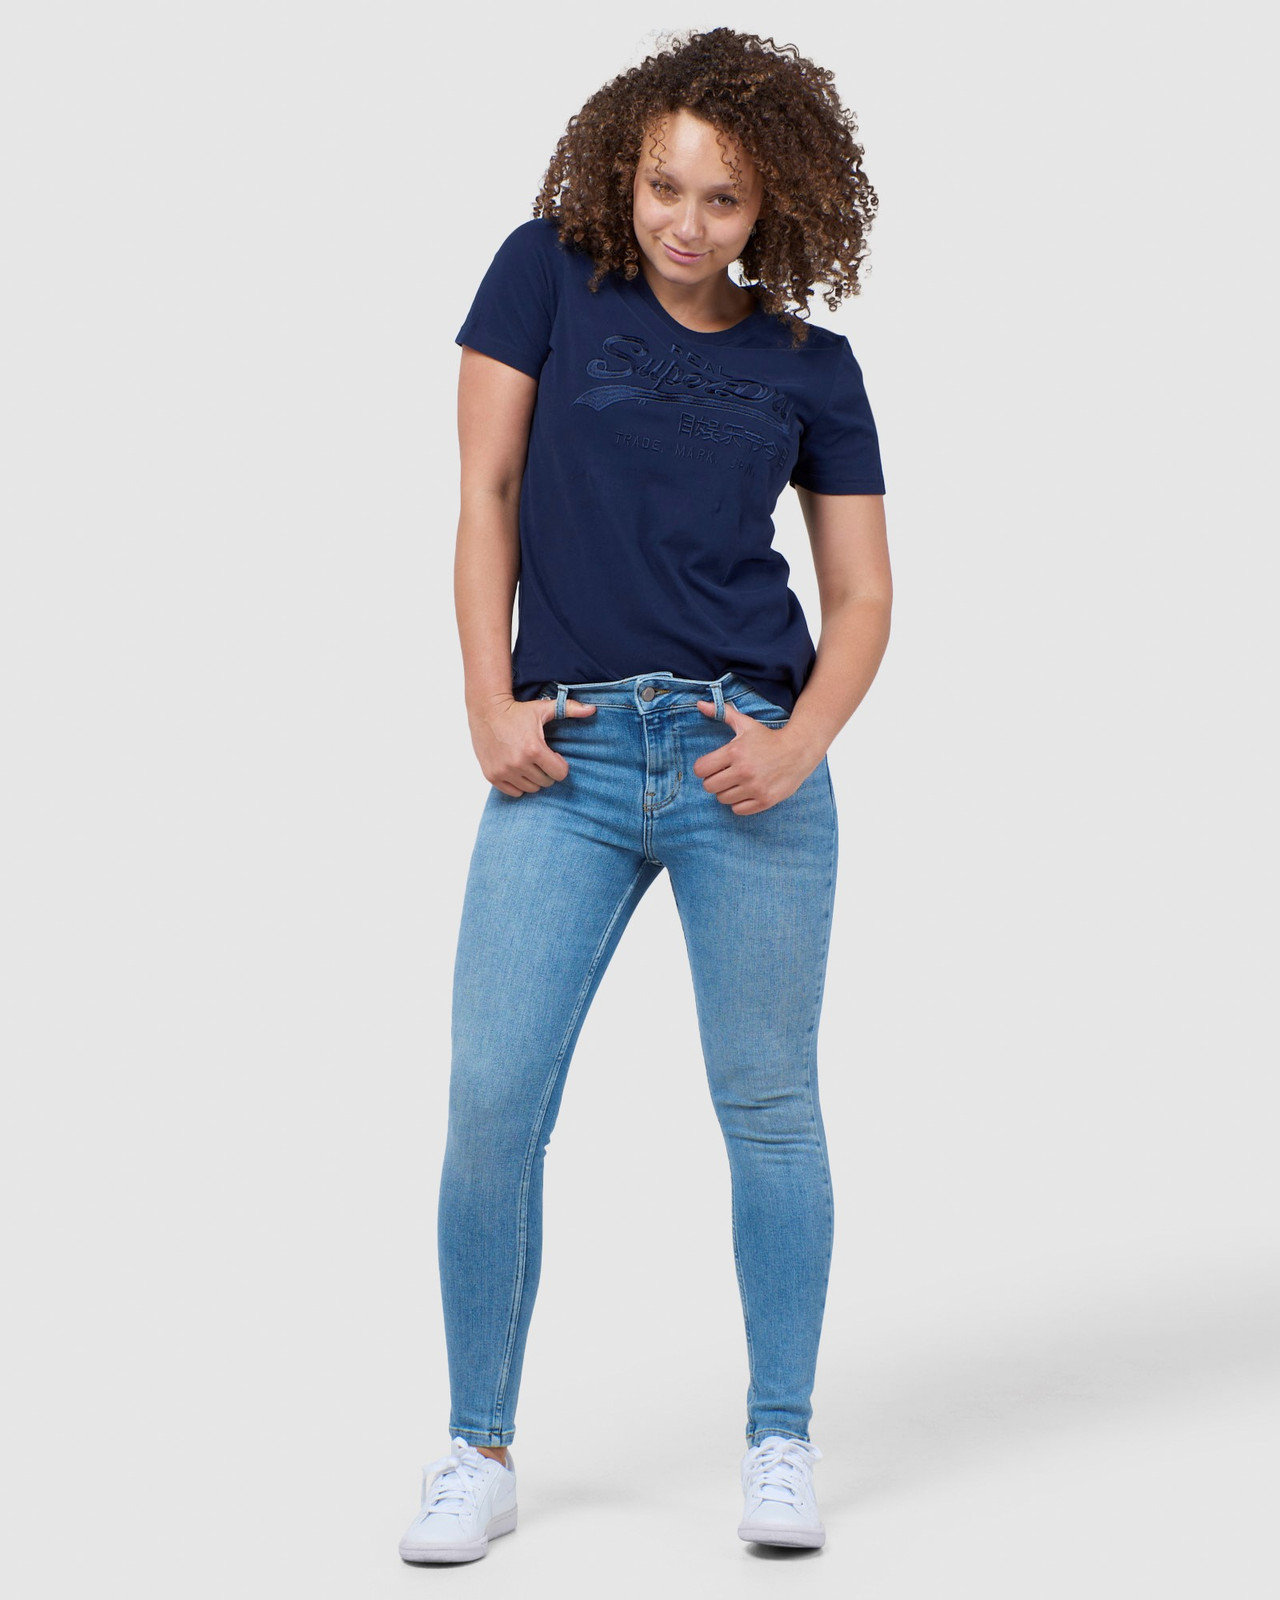 Superdry Womens Vintage Logo Tonal Embroidered Tee Navy Printed T Shirts 1